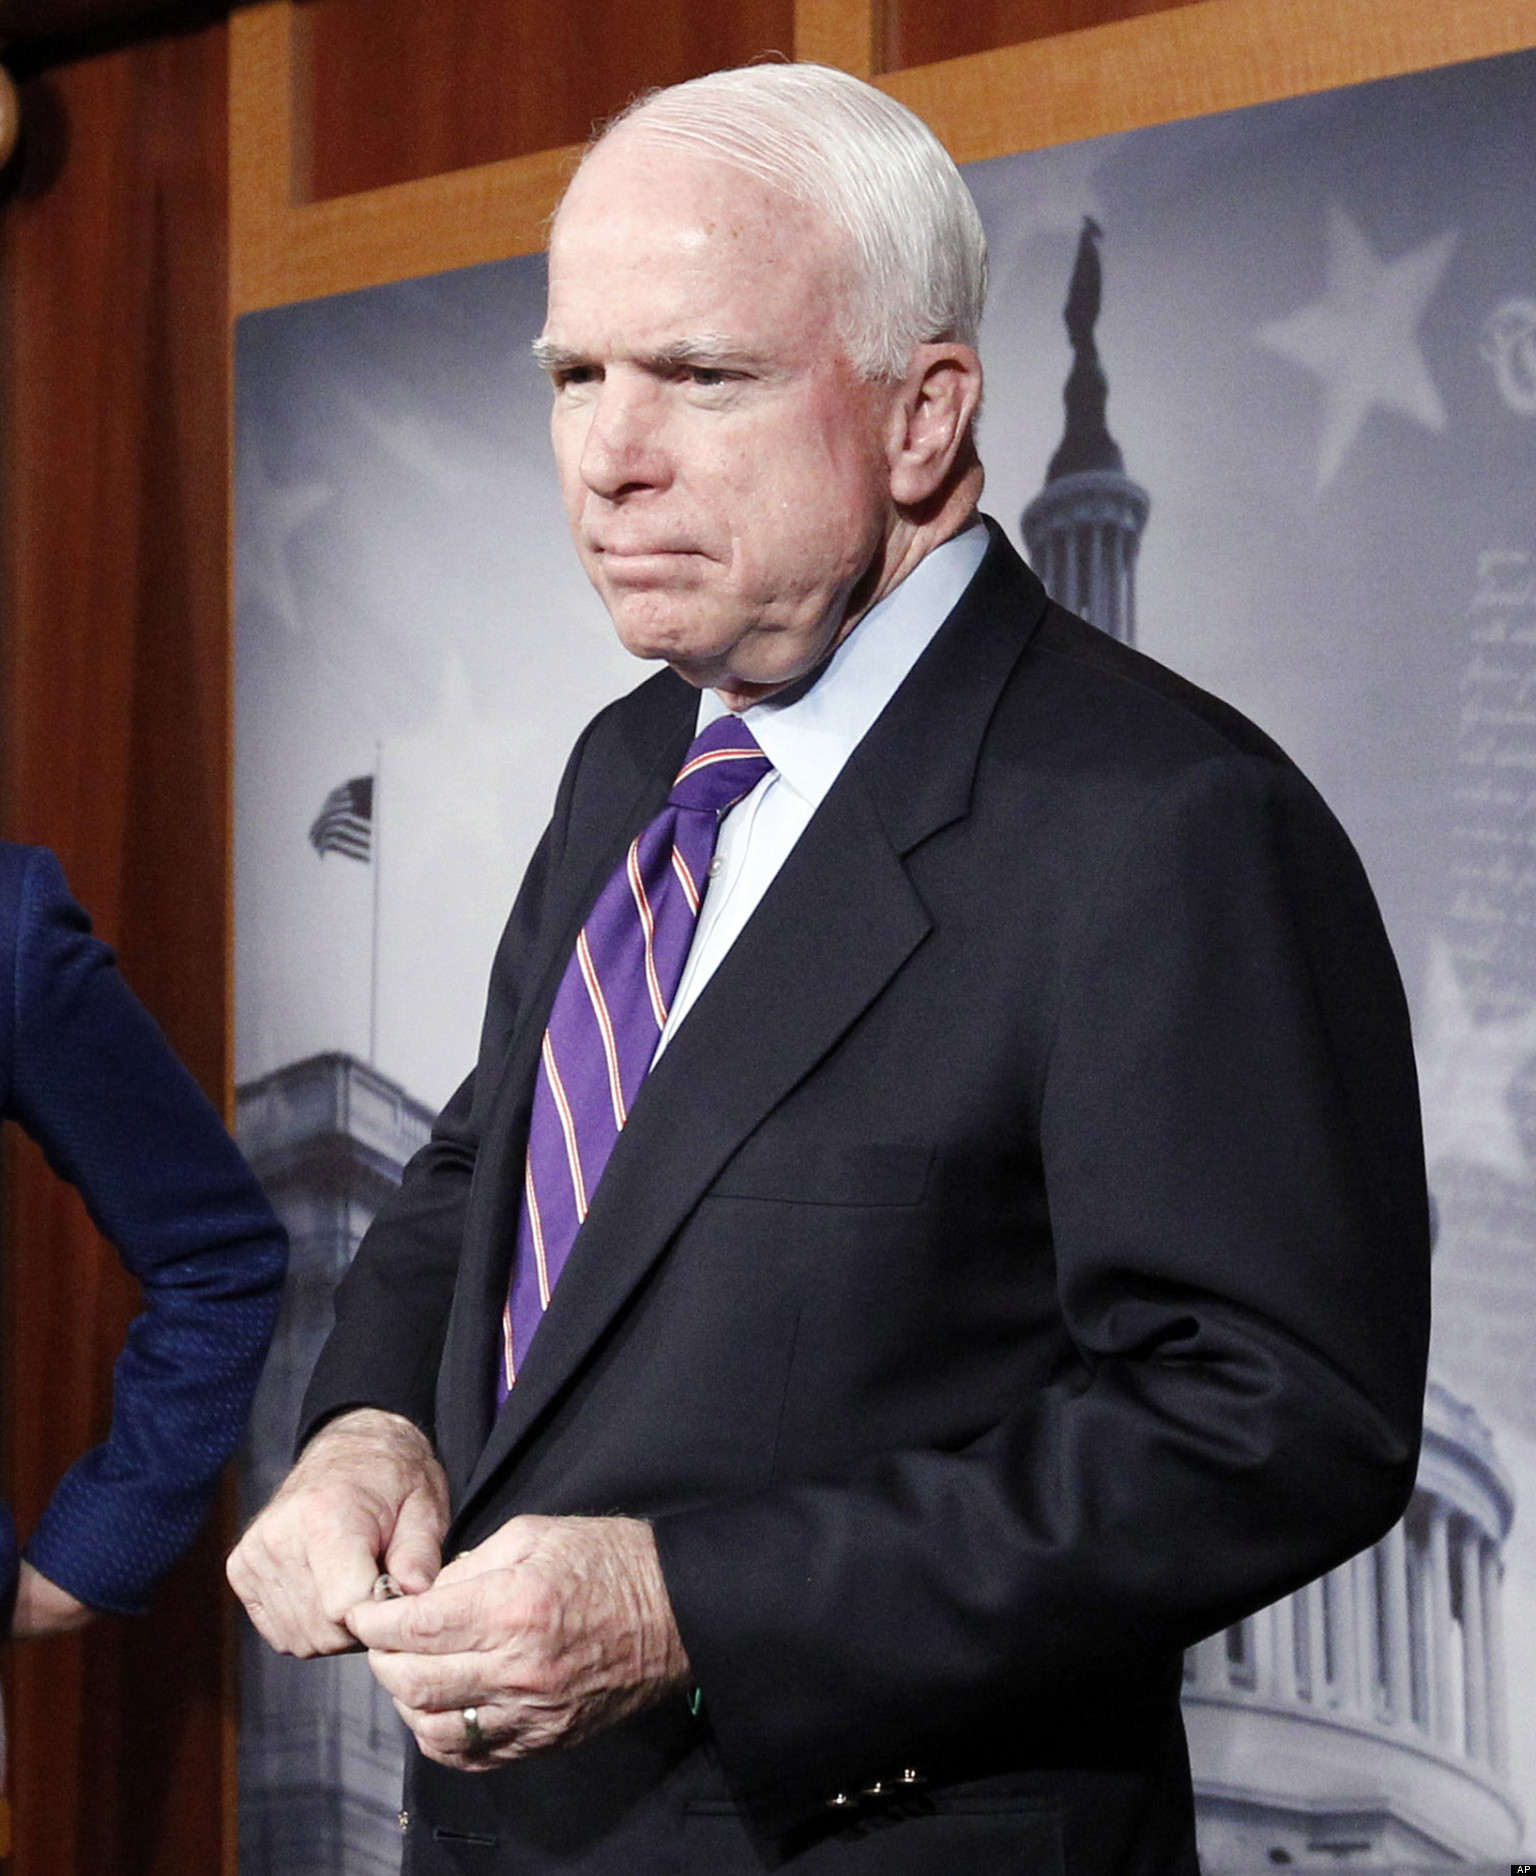 Sidney Mccain: John McCain: LGBT Issues 'Best Way To Derail' Immigration